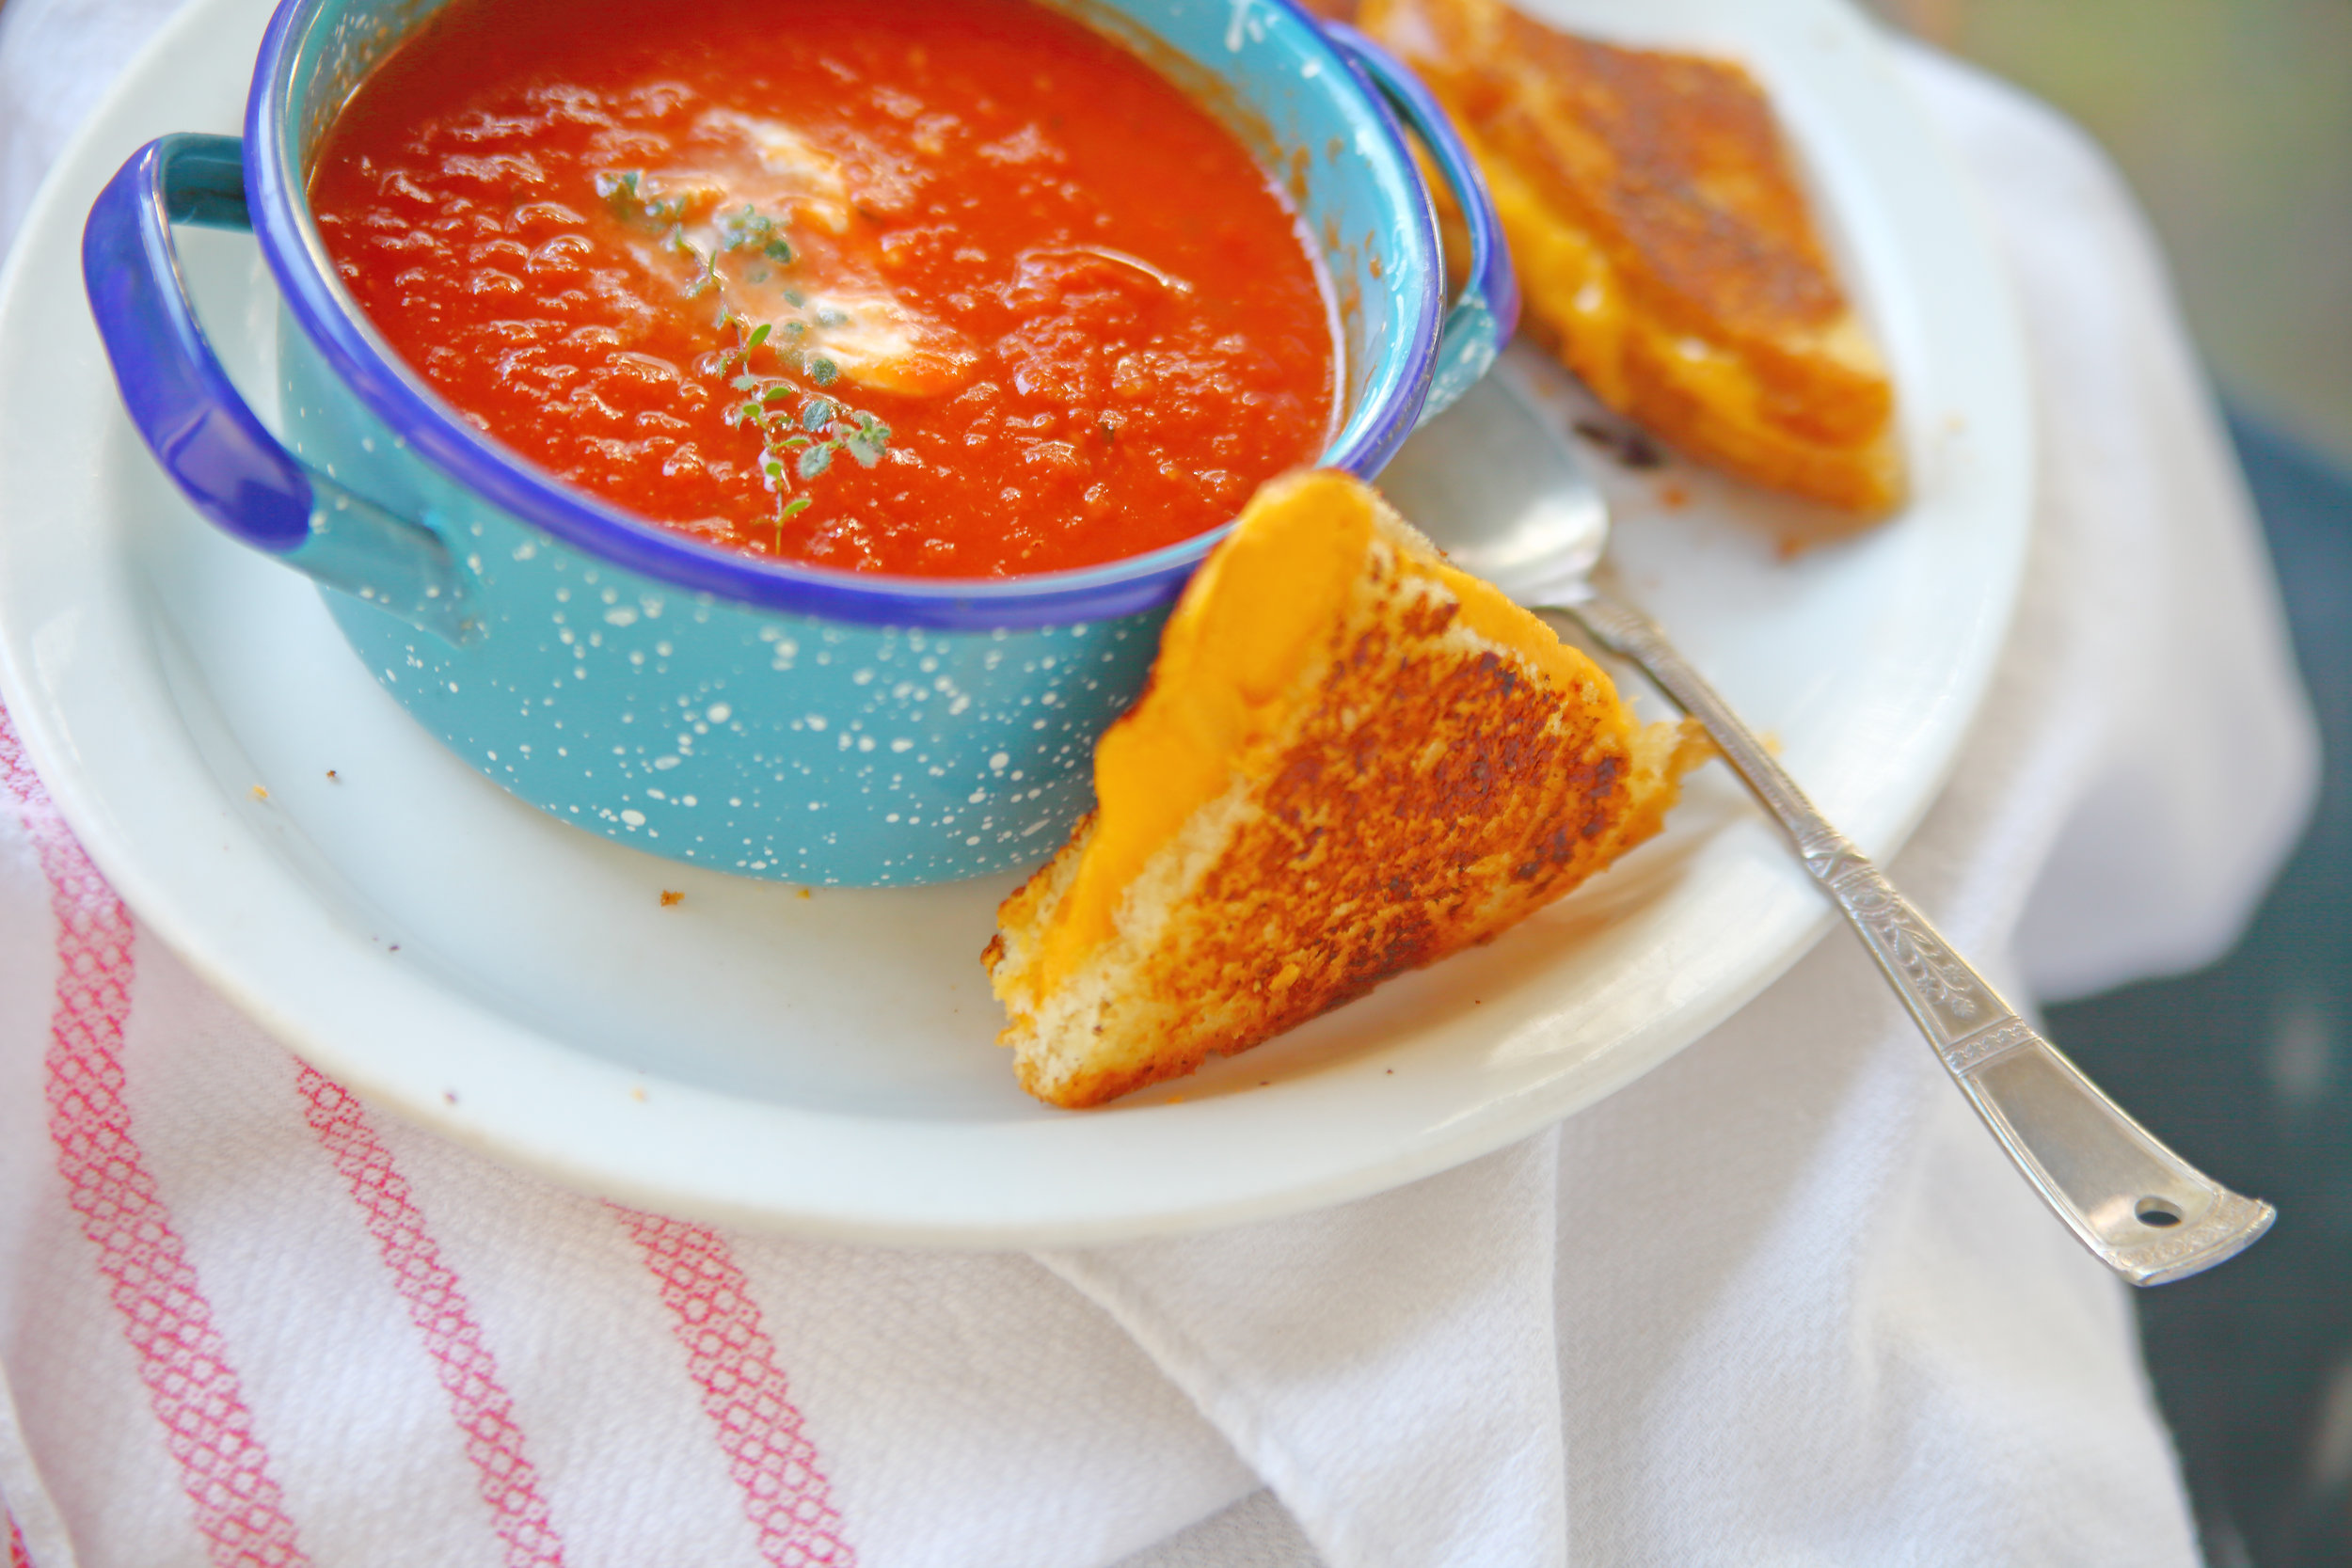 mini grilled cheese bites with not just pasta sauce. - a snackable riff on the classic grilled cheese and tomato soupServes: 4No need to add butter to the pan before cooking the grilled cheeses, the teaspoon of mayo on each slice of bread allows the bread to brown slowly and evenly.1 16 oz jar not just pasta sauce4 slices of sourdough bread4 teaspoons mayo, divided1.5 oz sharp white cheddar cheese (about 3 slices)1.5 oz provolone cheese (about 3 slices)olive oil, for servingMaldon salt, for serving1. add the not just pasta sauce to a blender and puree until smooth, about 30 seconds.2. reserve two tablespoons and set aside. pour the remaining sauce into a small sauce-pan and heat over low until beginning to simmer, about 10 minutes.3. meanwhile, place all four pieces of bread on a cutting board and slather with 1 teaspoon of mayo each (this is key to even browning). Flip two over and spread with the reserved tomato puree.4. in a 12-inch nonstick skillet over medium heat, place 2 slices of bread, mayo side down, and add three slices of mixed cheese to each. top with the remaining slices of bread, puree side down, and cook until the bottom side is golden brown, about 6-8 minutes. carefully flip the sandwich and cook for another 3-5 minutes, lightly pressing down on the sandwich occasionally to ensure even browning.5. transfer the sandwiches to a cutting board and cut each into 6 even triangles, place on a platter and sprinkle with Maldon salt. pour the tomato puree into small bowl for dipping and drizzle with olive oil.